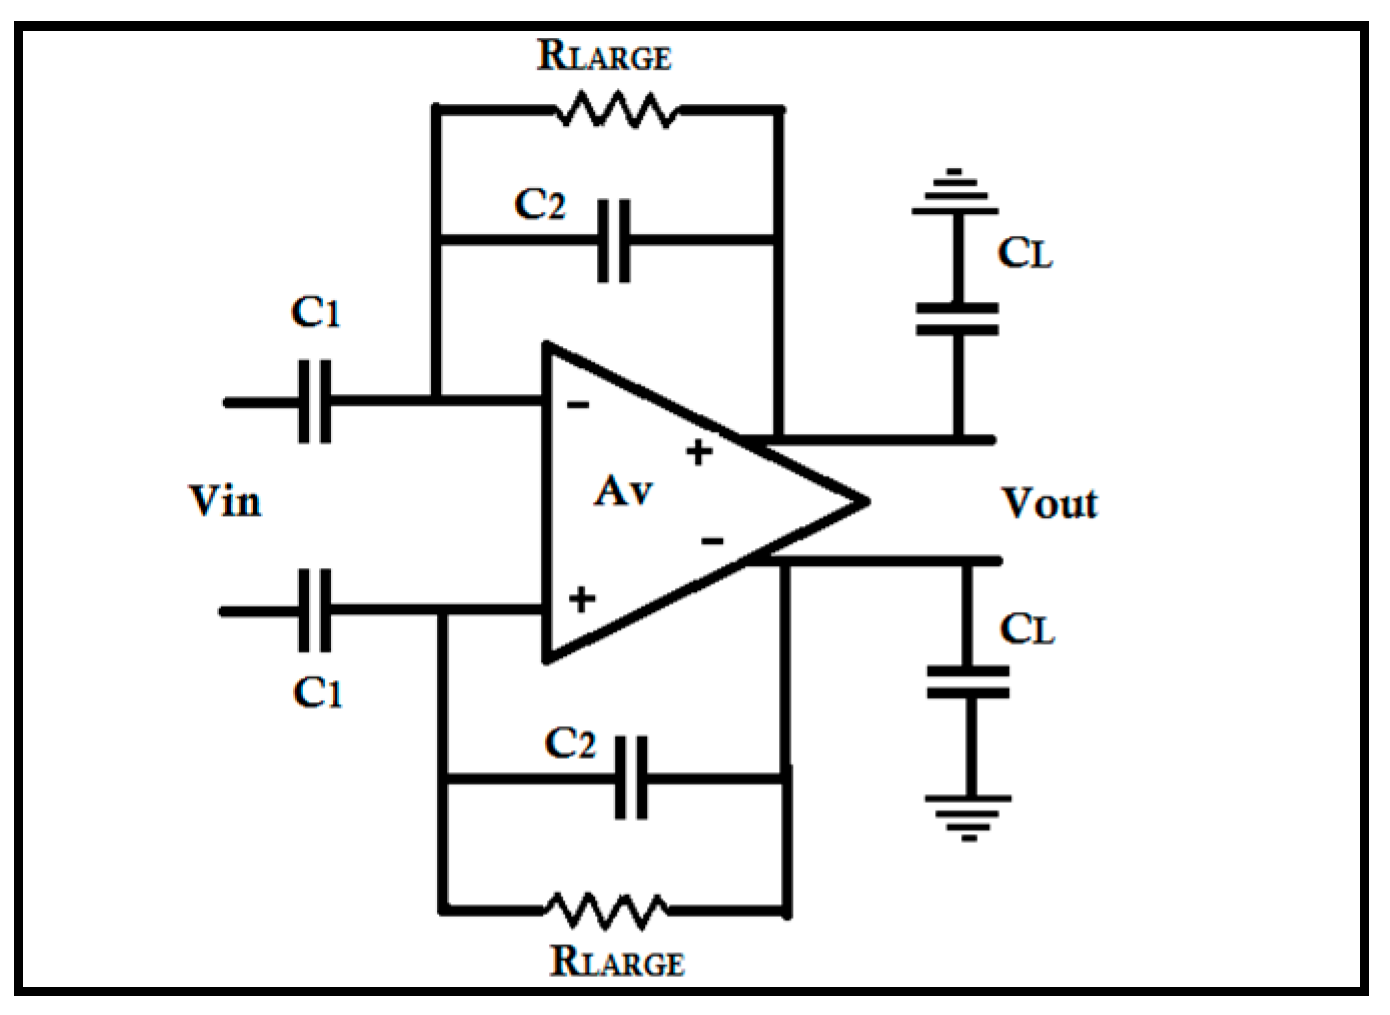 Jlpea Free Full Text An Improved Cmos Design Of Op Amp As Comparator Circuit With This The 08 00033 G003 Figure 3 Operational Amplifier